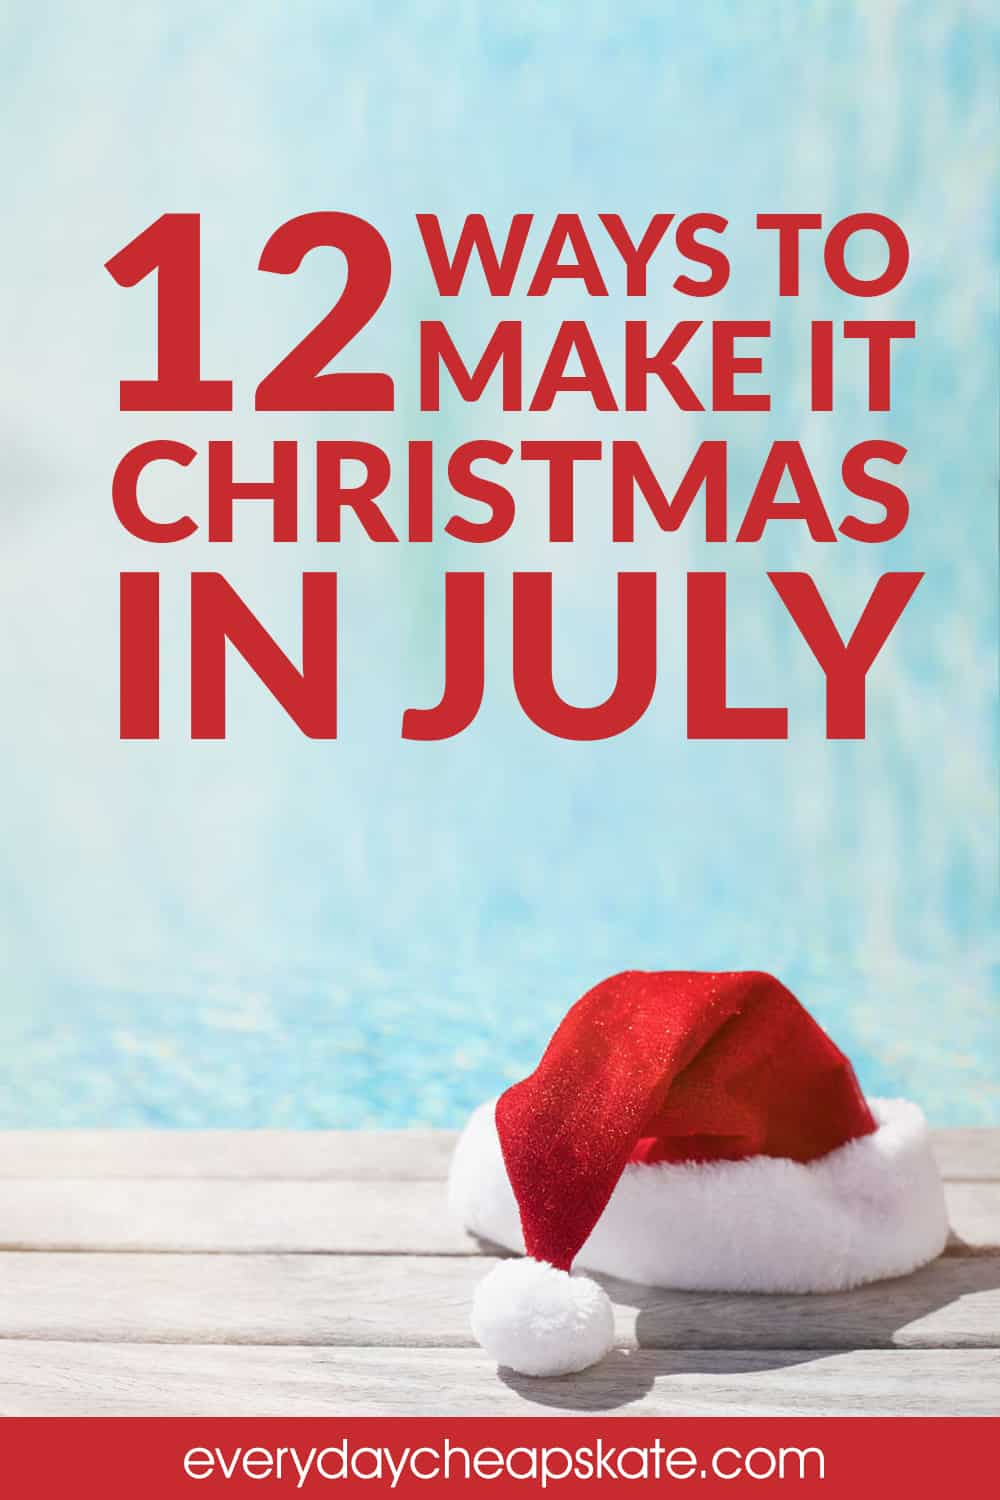 12 Ways to Make it Christmas in July